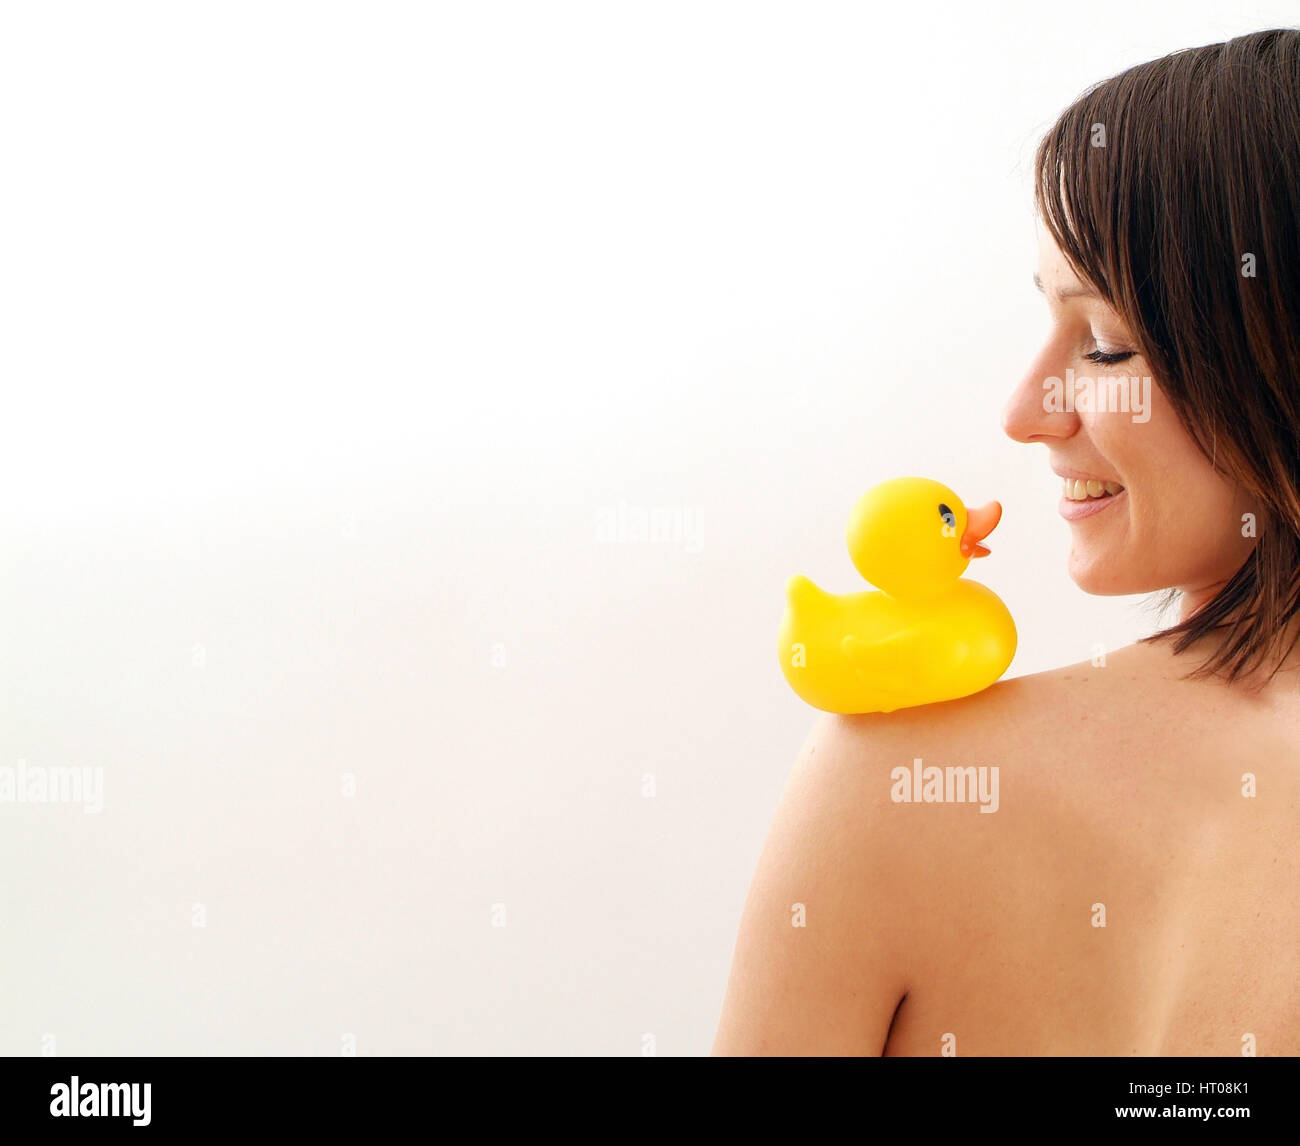 Junge Frau mit Badeente auf der Schulter - young woman with rubber duck on shoulder Stock Photo